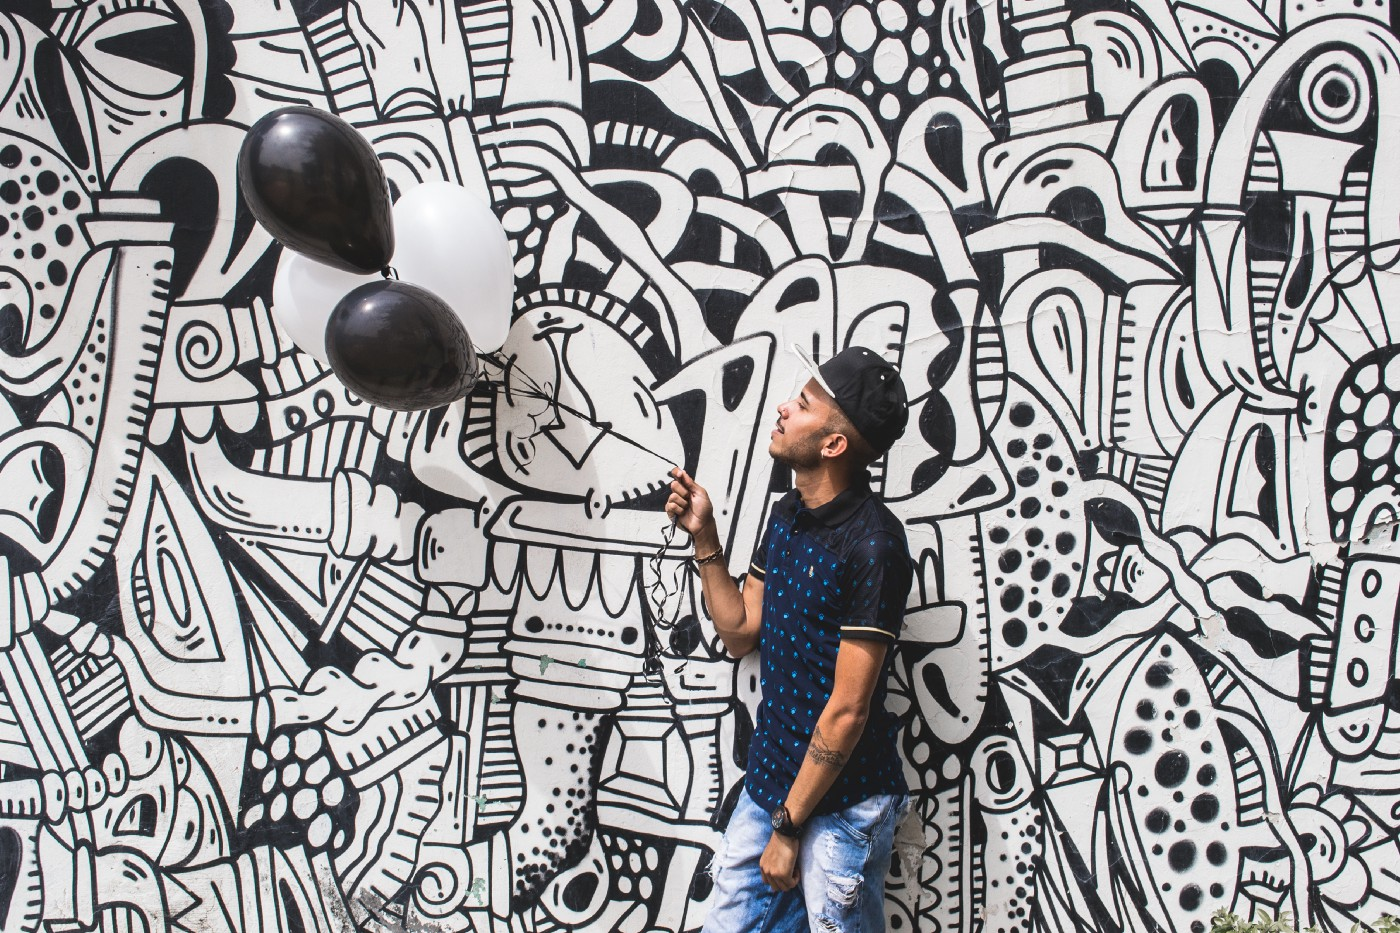 Image of mural and man holding balloons in front of it